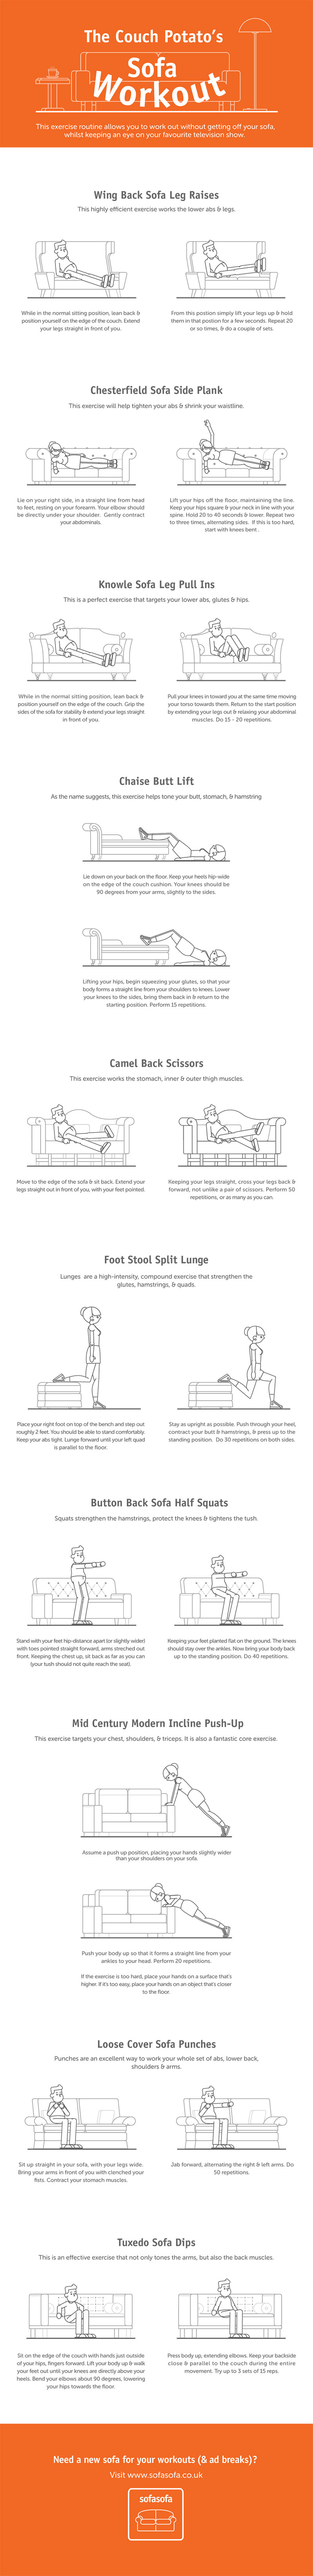 The Couch Potato's Sofa Workout